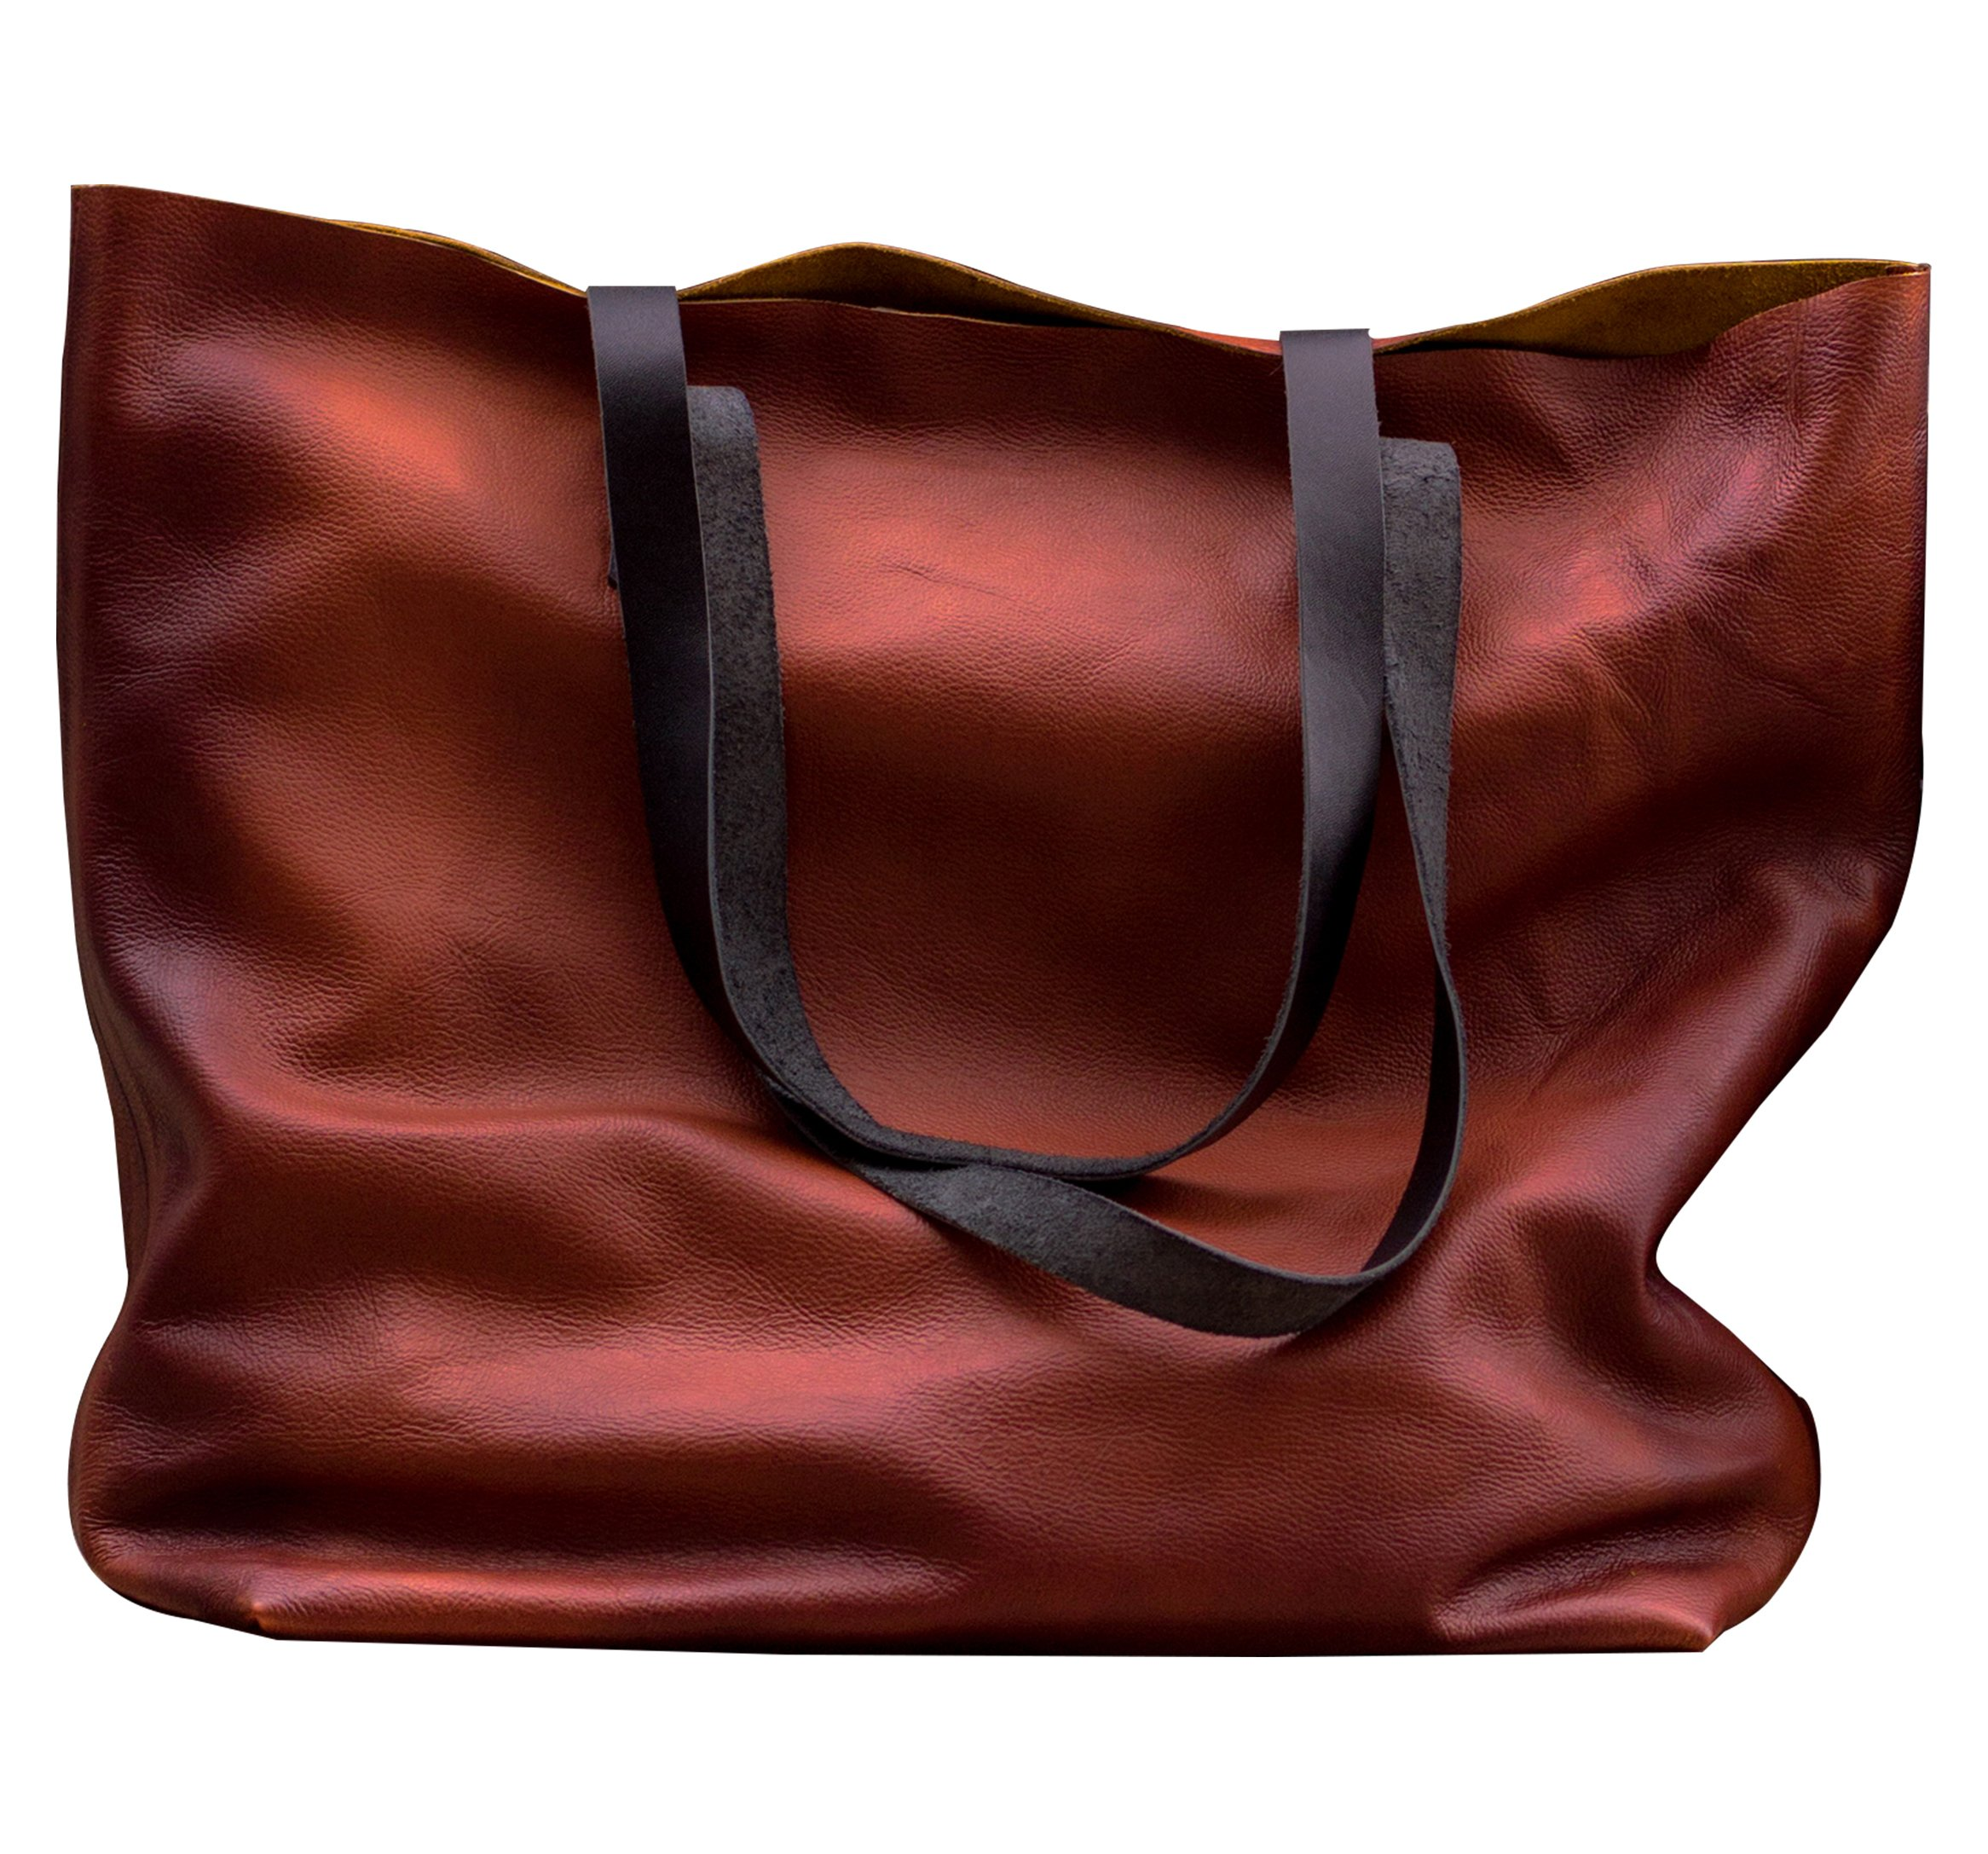 MONT5 Wax Finish Carry All Brown Leather Tote Women Work Shoulder Laptop Bag